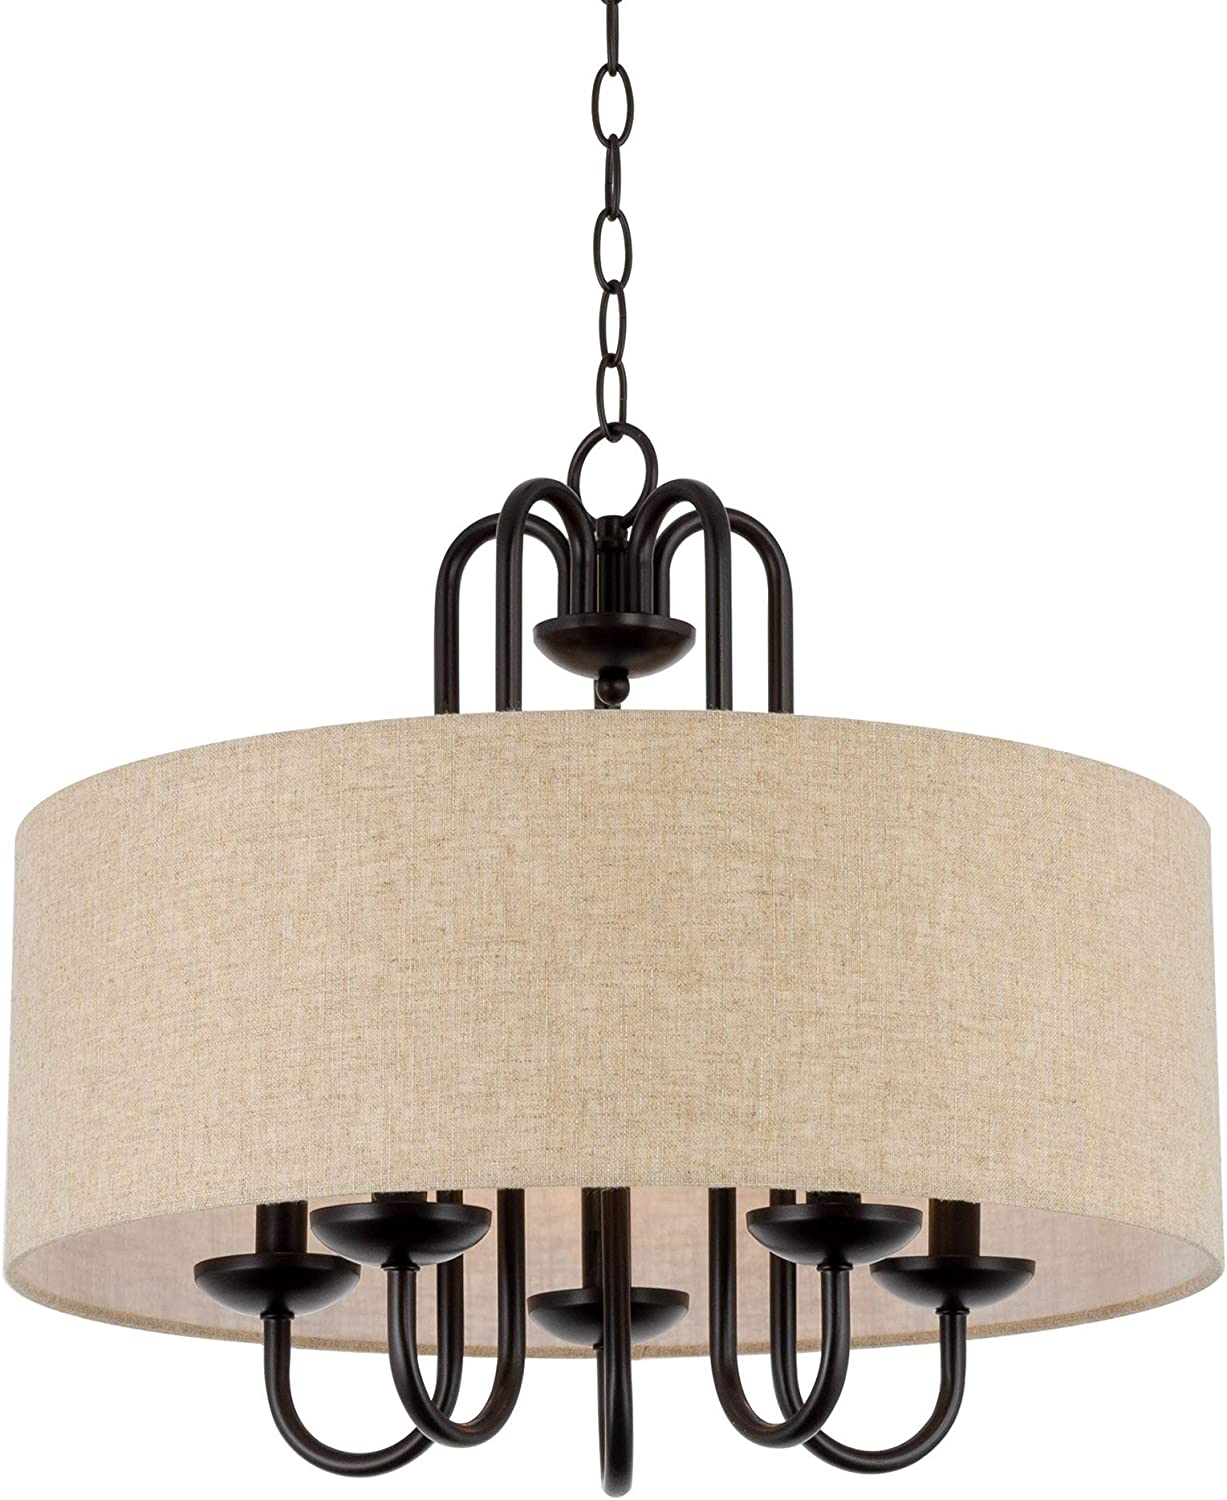 "Kira Home Gwenyth 20"" 5-Light Modern Drum Chandelier + Oatmeal Fabric Shade, Oil Rubbed Bronze Finish"